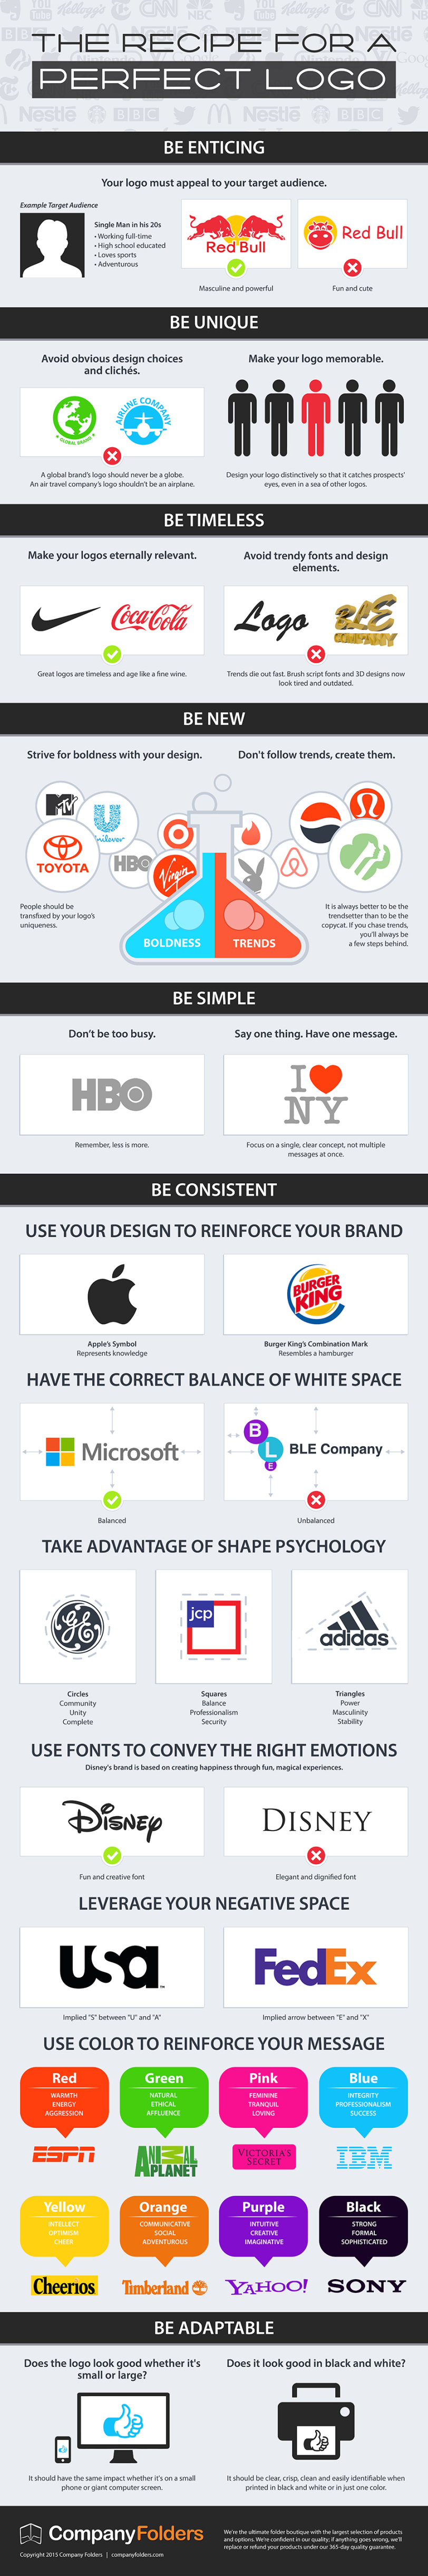 Designing the Perfect Logo